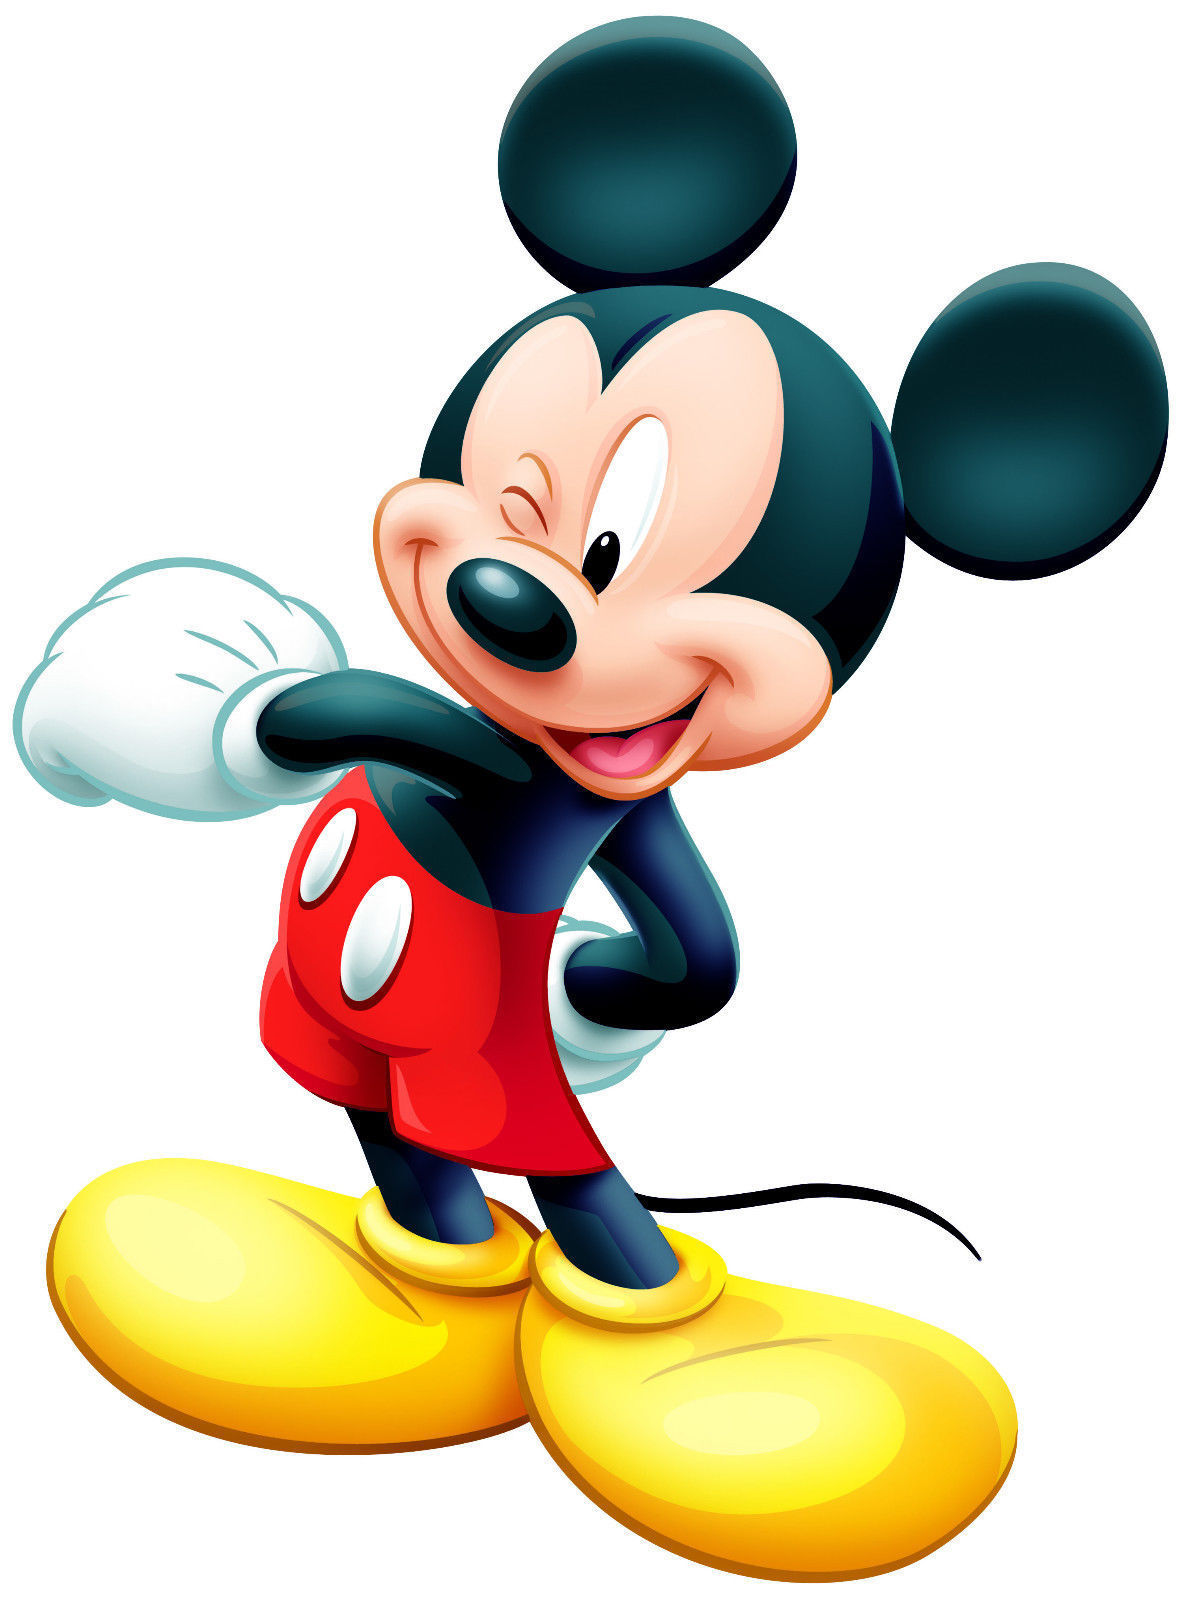 £2.99 GBP - Mickey Mouse Vinyl Wall Sticker Wall Decal Size Xl #ebay #  sc 1 st  Pinterest & 2.99 GBP - Mickey Mouse Vinyl Wall Sticker Wall Decal Size Xl #ebay ...